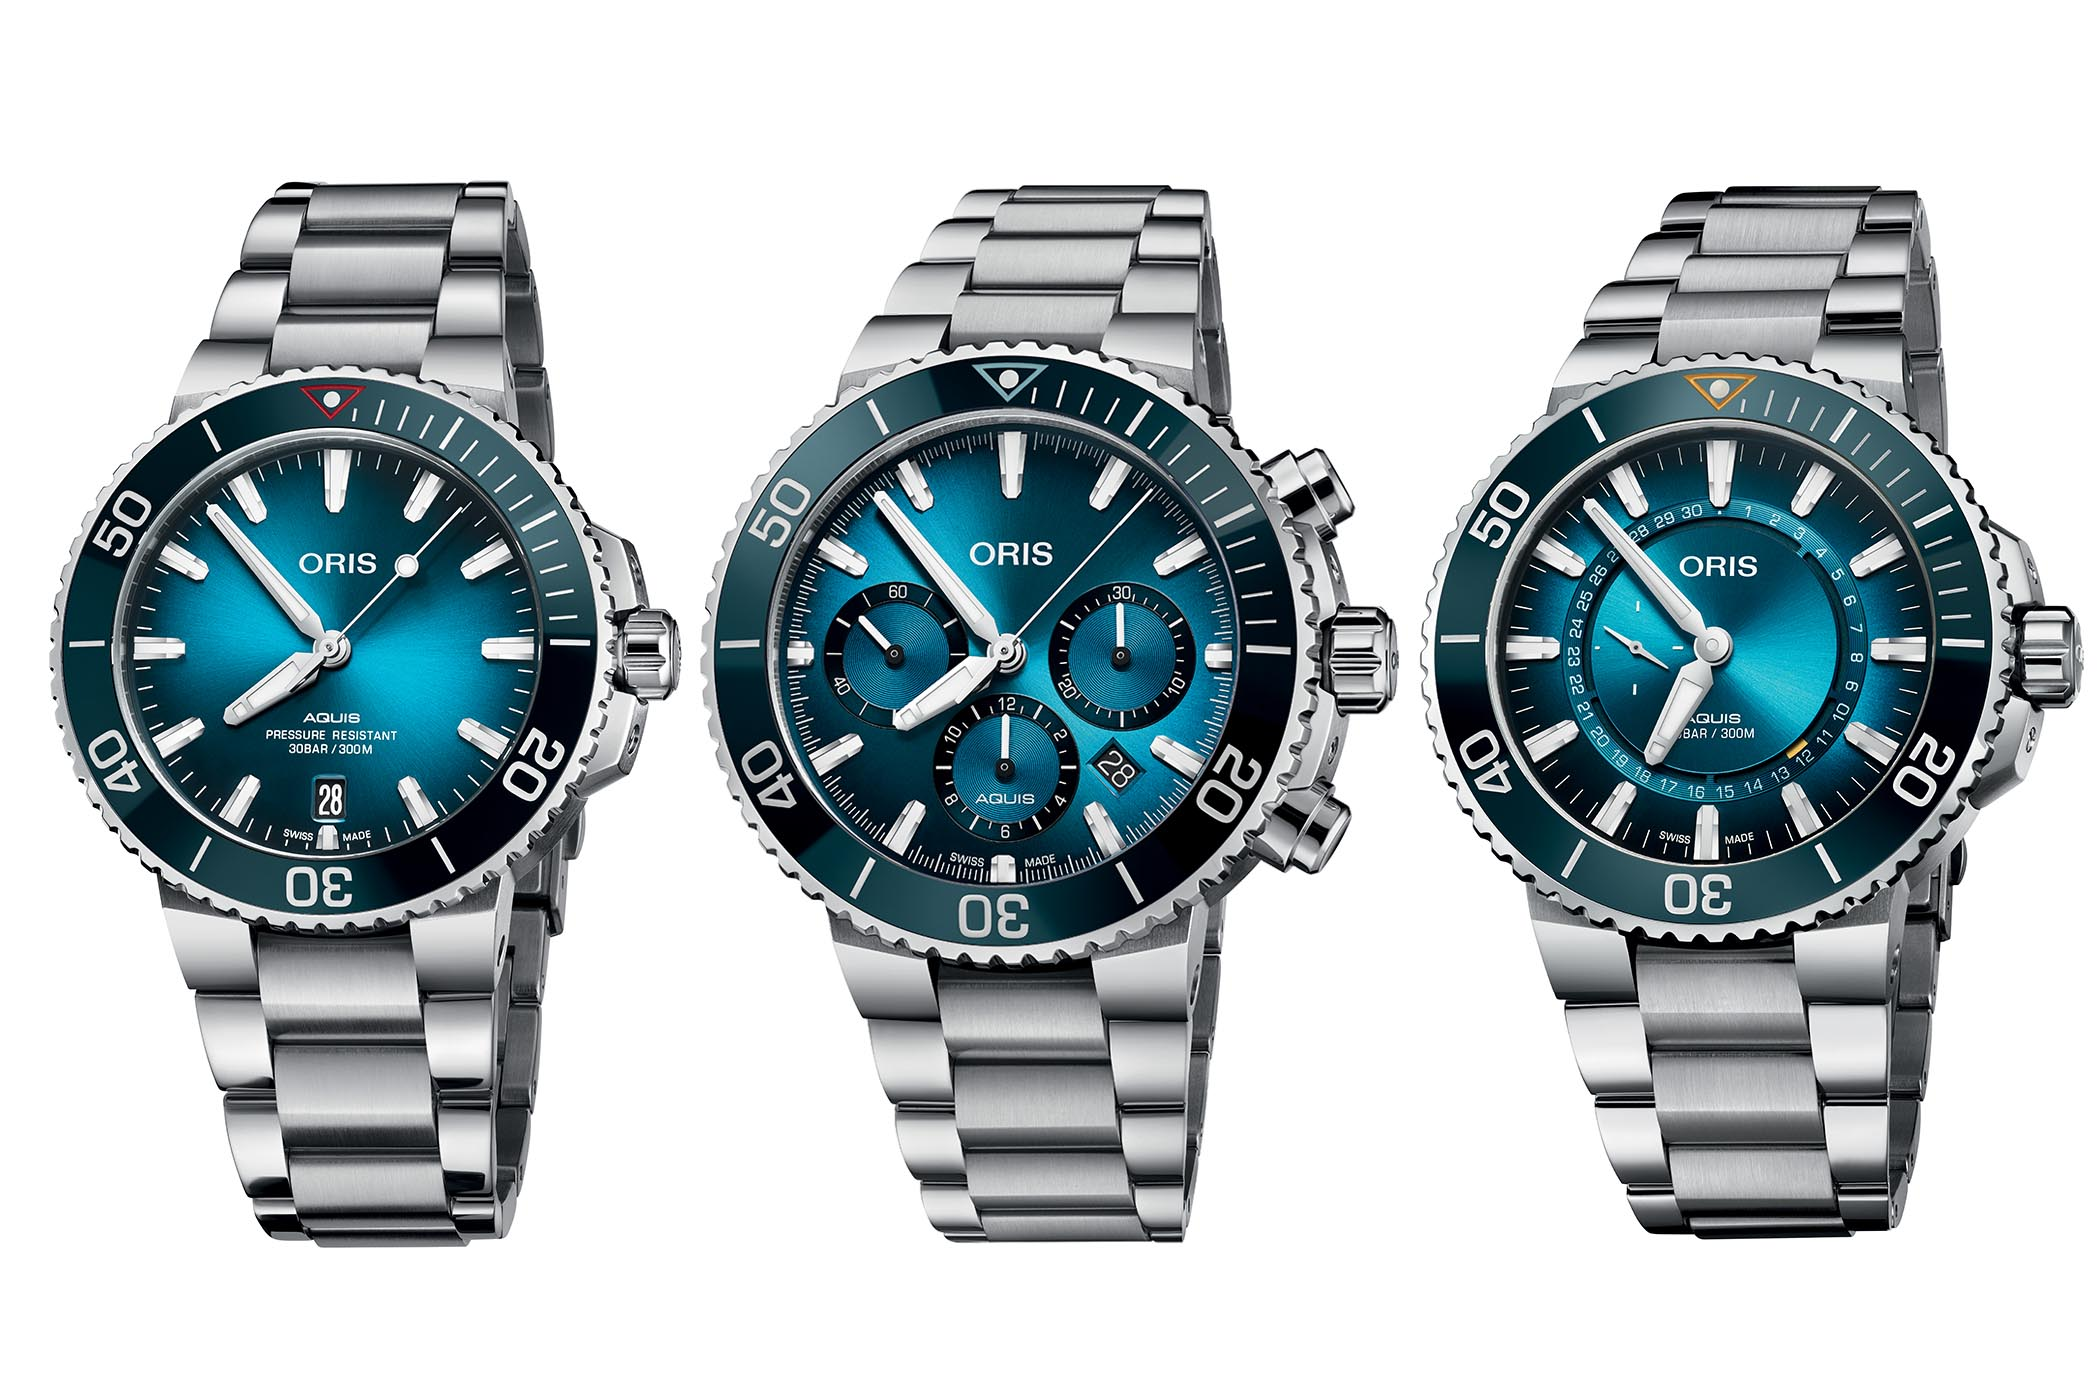 De Oris Ocean Trilogy is compleet